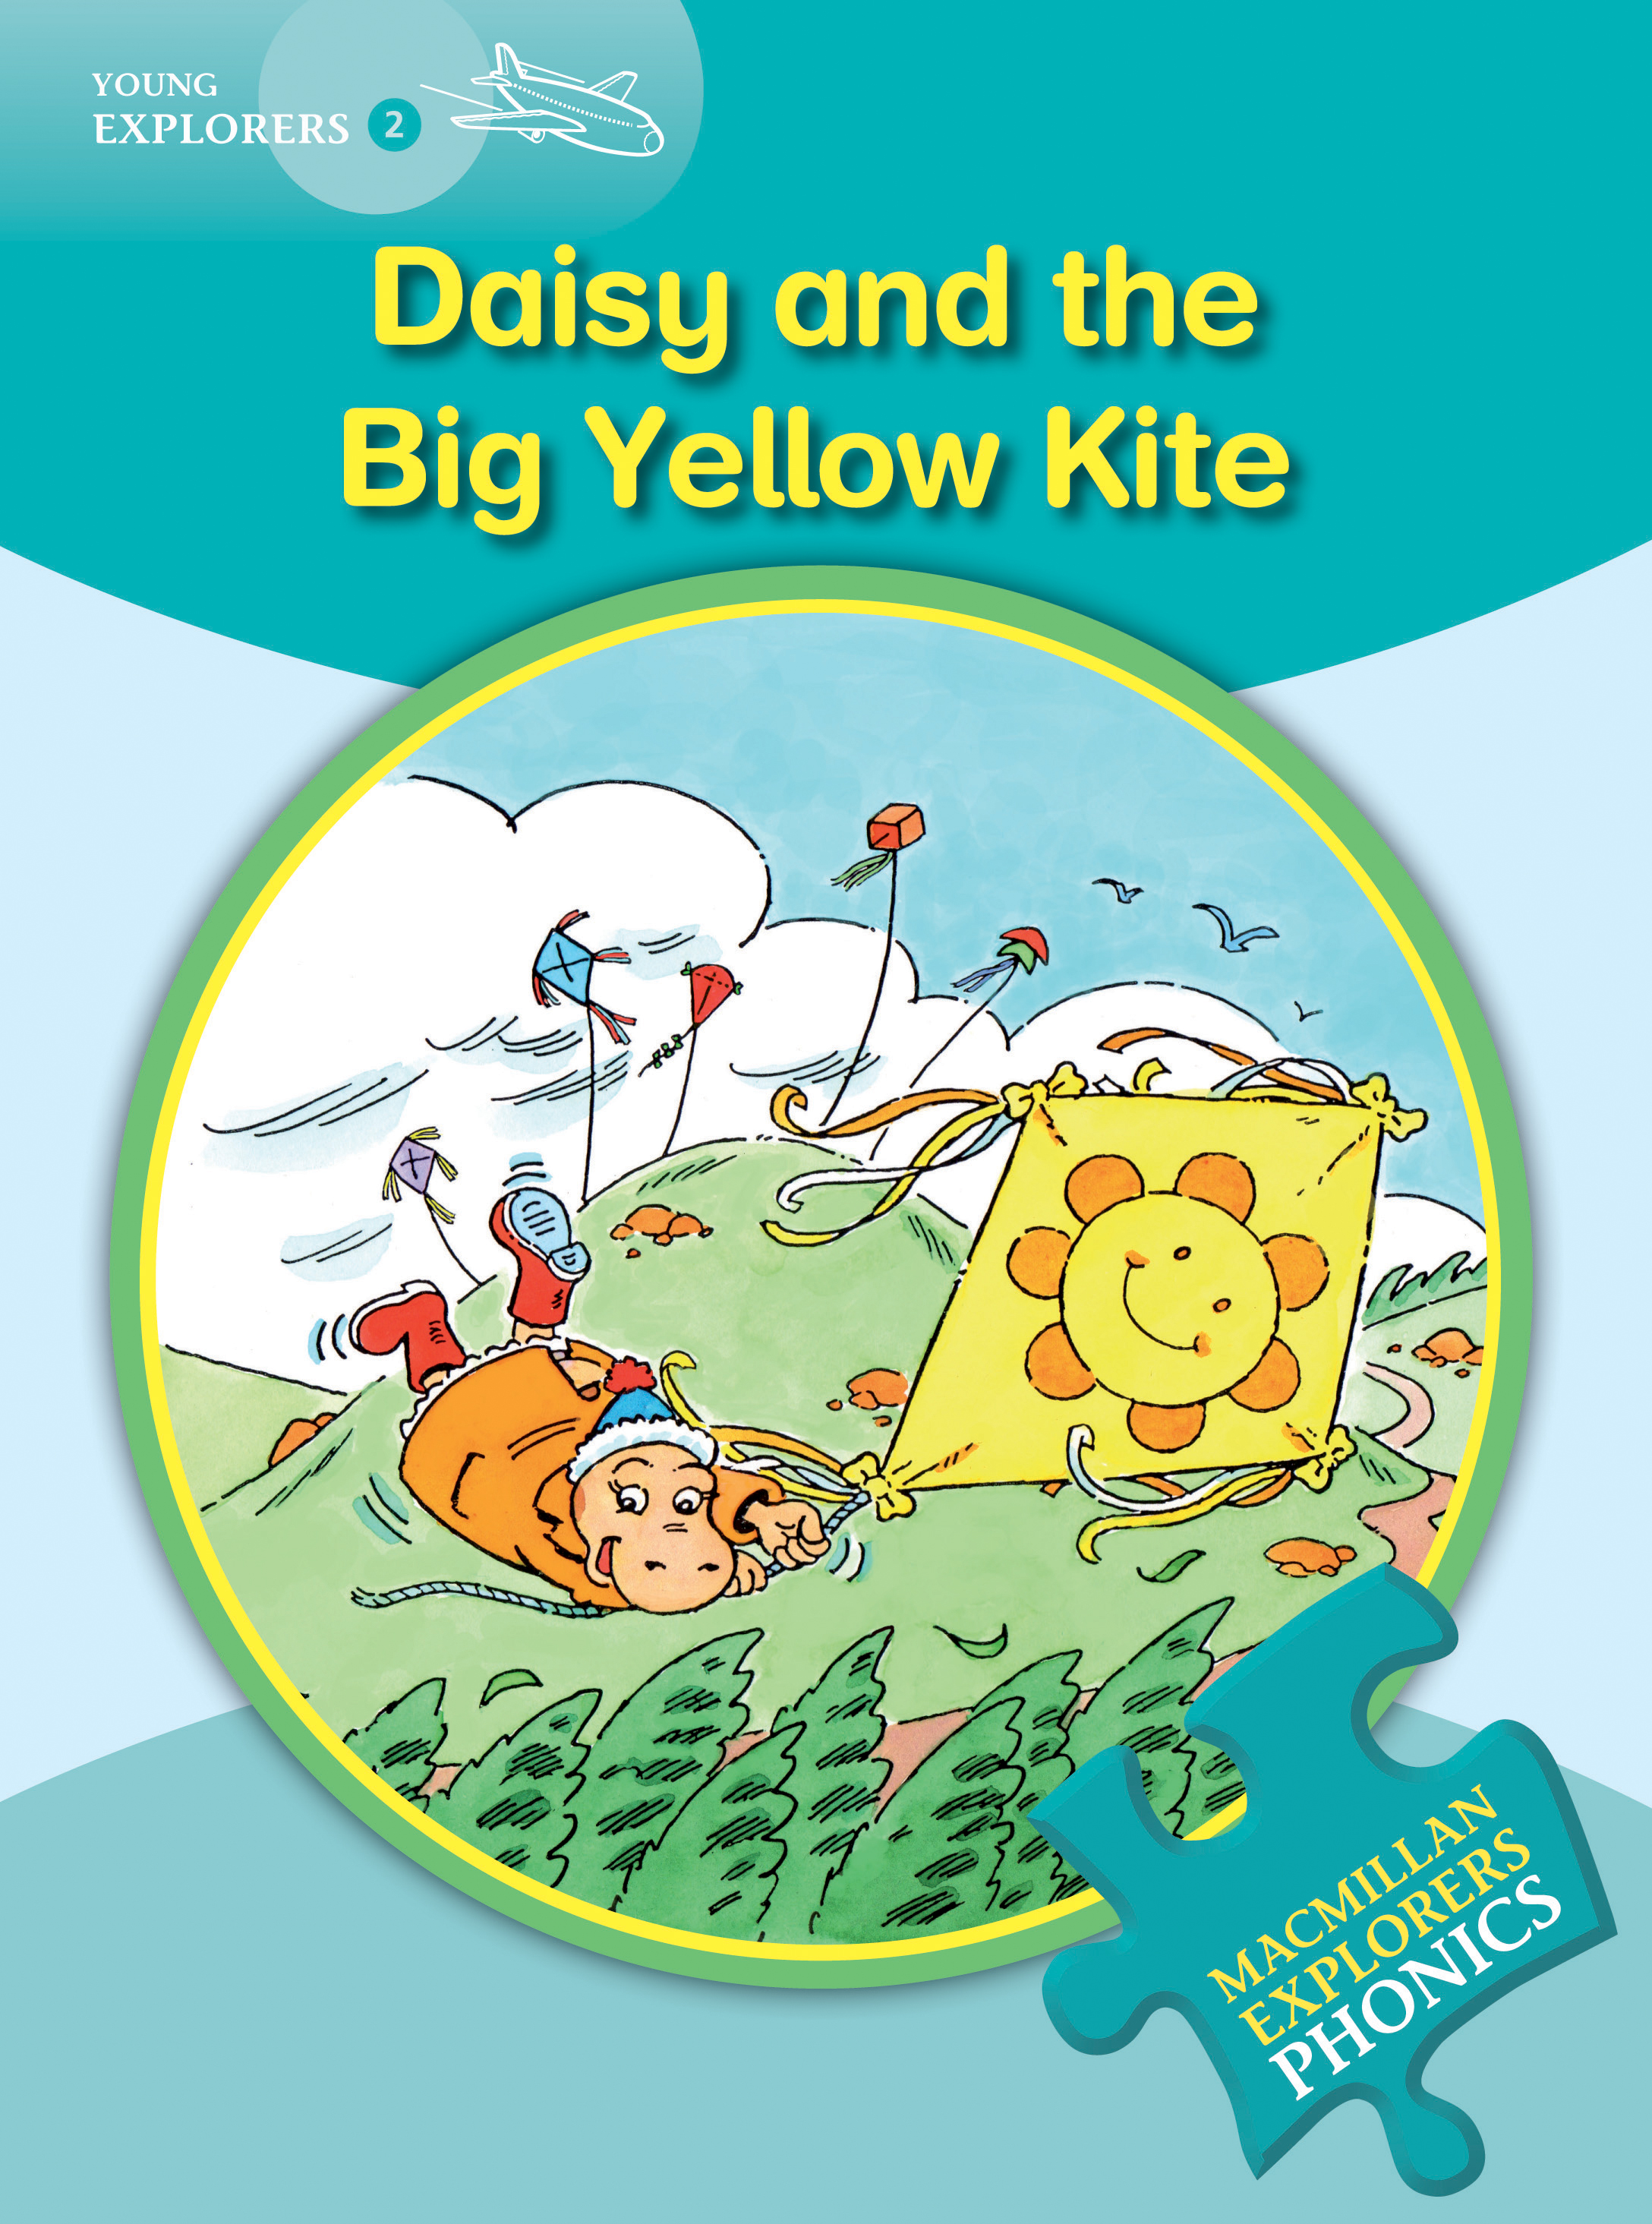 Young Explorers 2: Daisy and the Big Yellow Kite